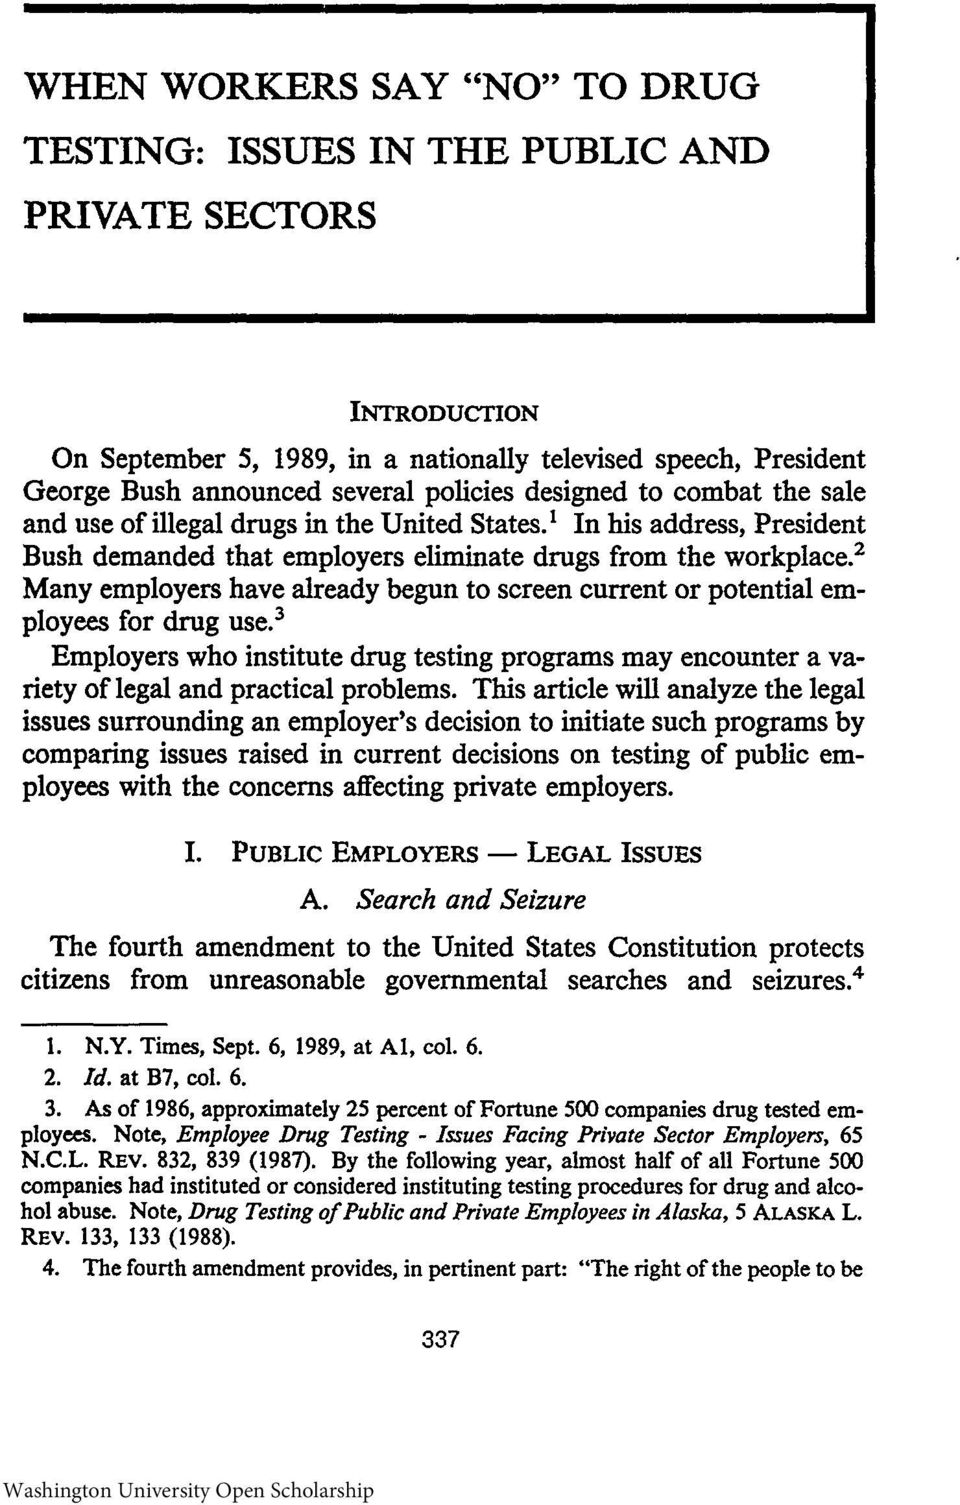 is drug testing an unwarranted invasion of employee privacy essay Is drug testing an unwarranted invasion of employee privacy which is more important–getting drugs out of the workplace or protecting the privacy of the employee what about other health-threatening activities, i e smoking outside of working hours, unprotected sex, etc.